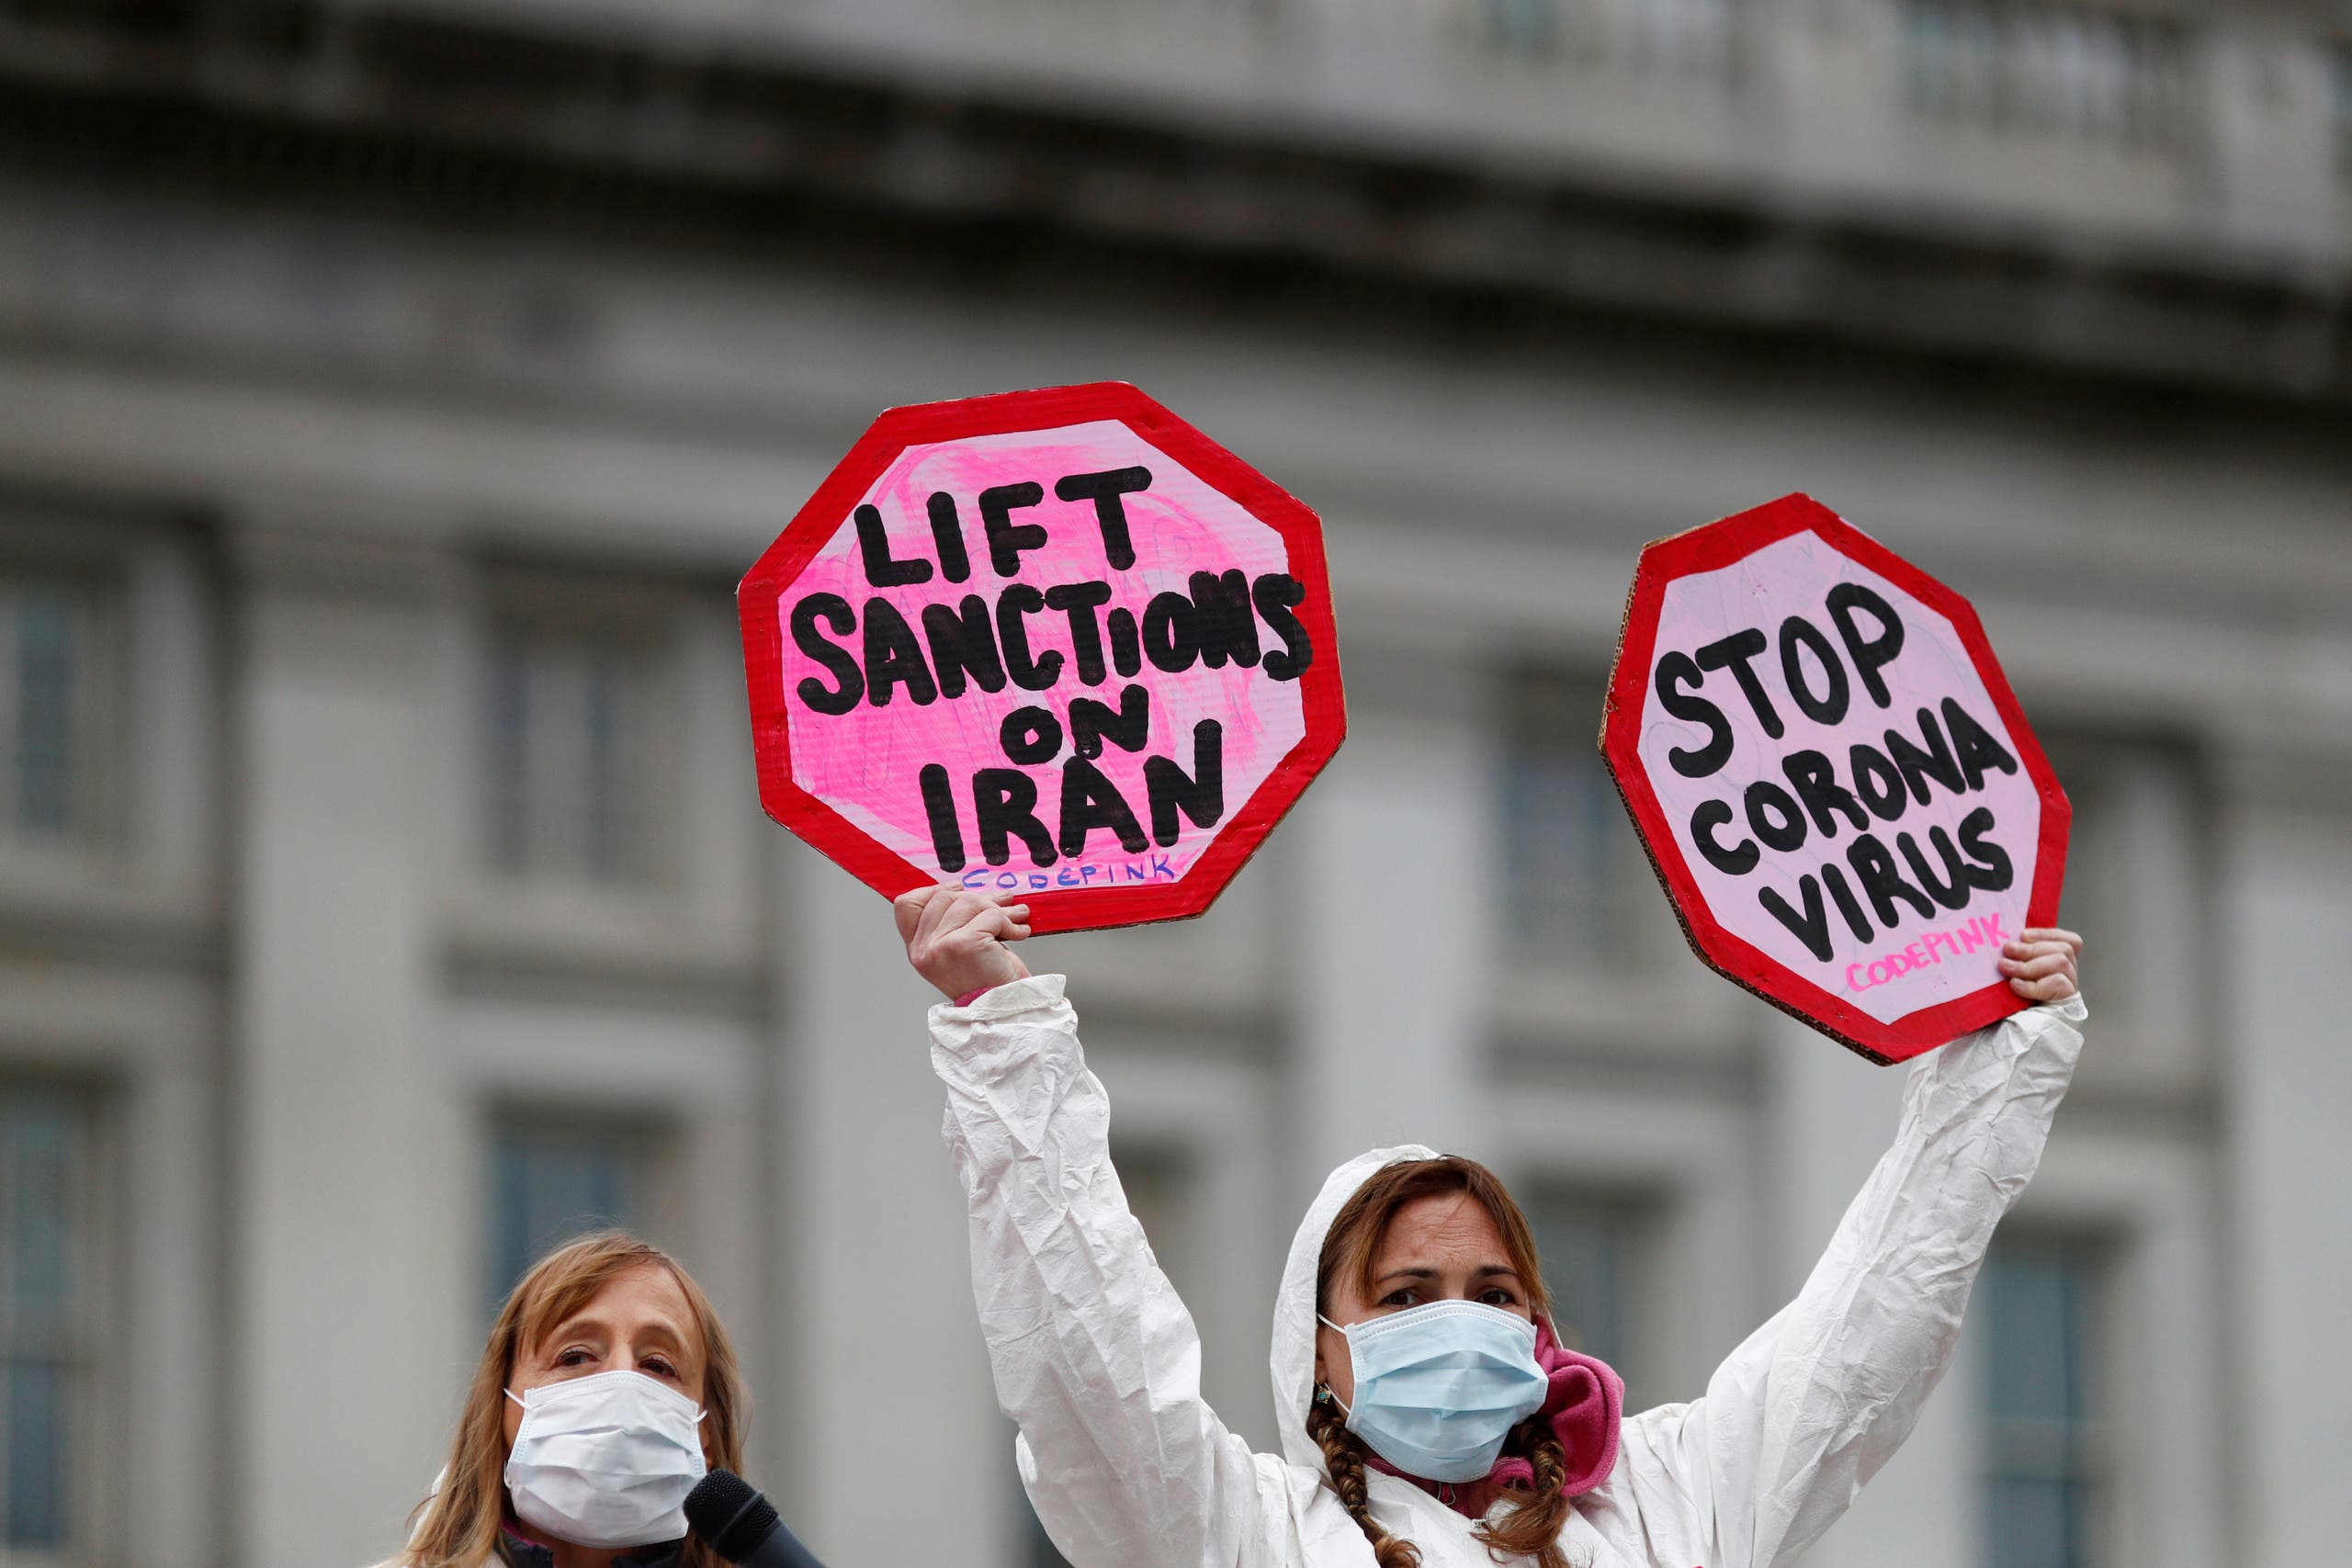 People attend a protest against the role that U.S. sanctions plays on Iran and the exacerbation of the coronavirus on March 11, 2020. (Reuters)